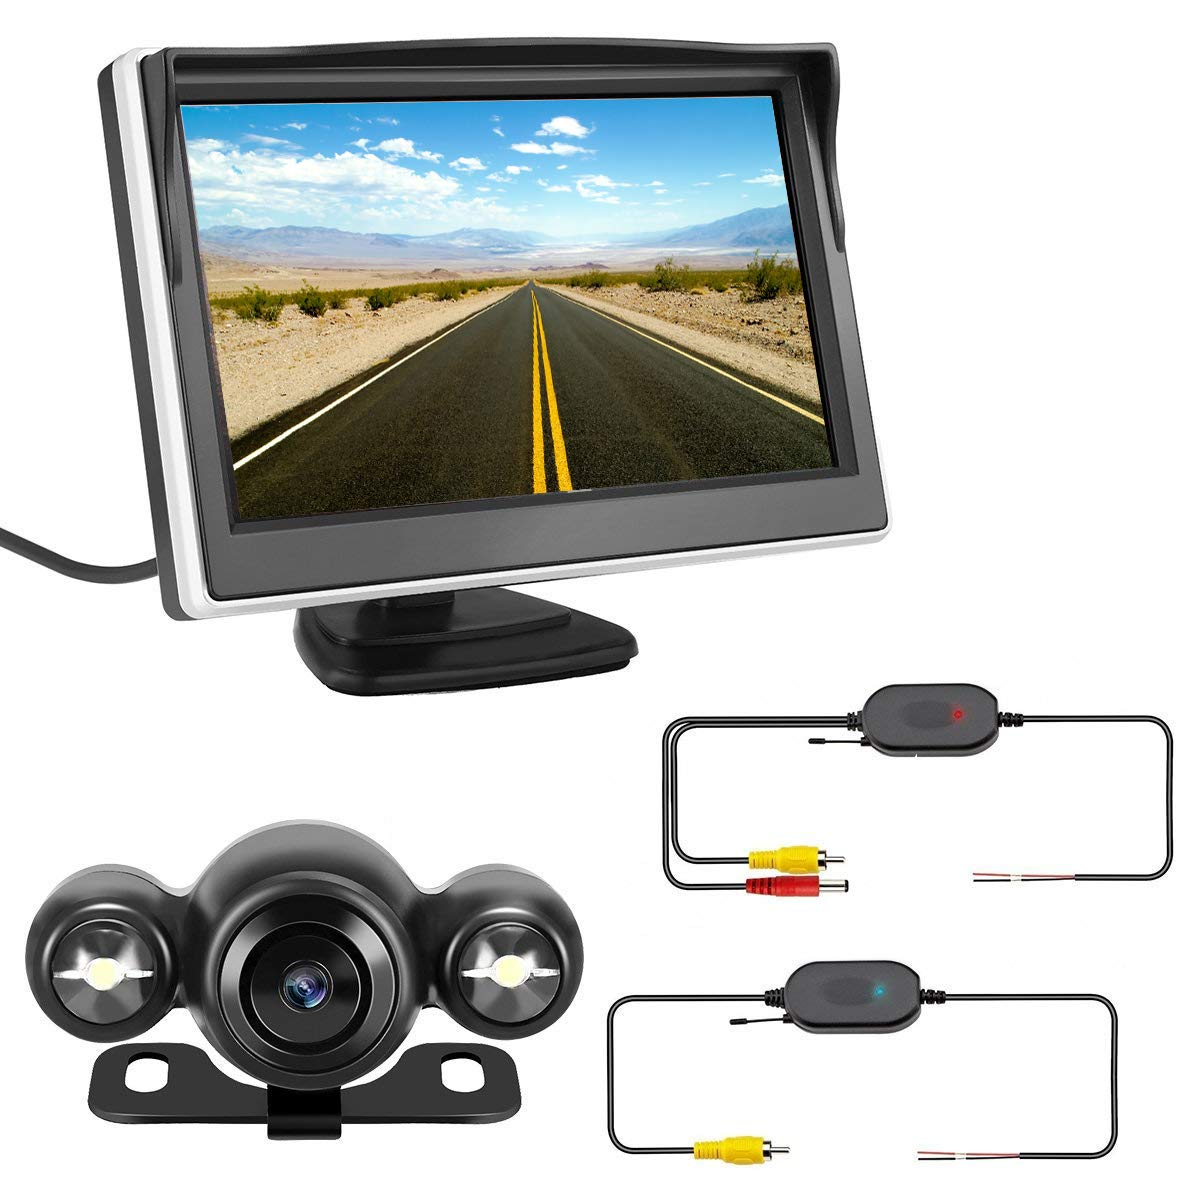 Backup Camera and Wireless Monitor Kit,Rear View Wireless Car Camera System with 5'' Color HD LCD Monitor Tvird Waterproof Night Vision 170°Wide Angle Viewing Parking System